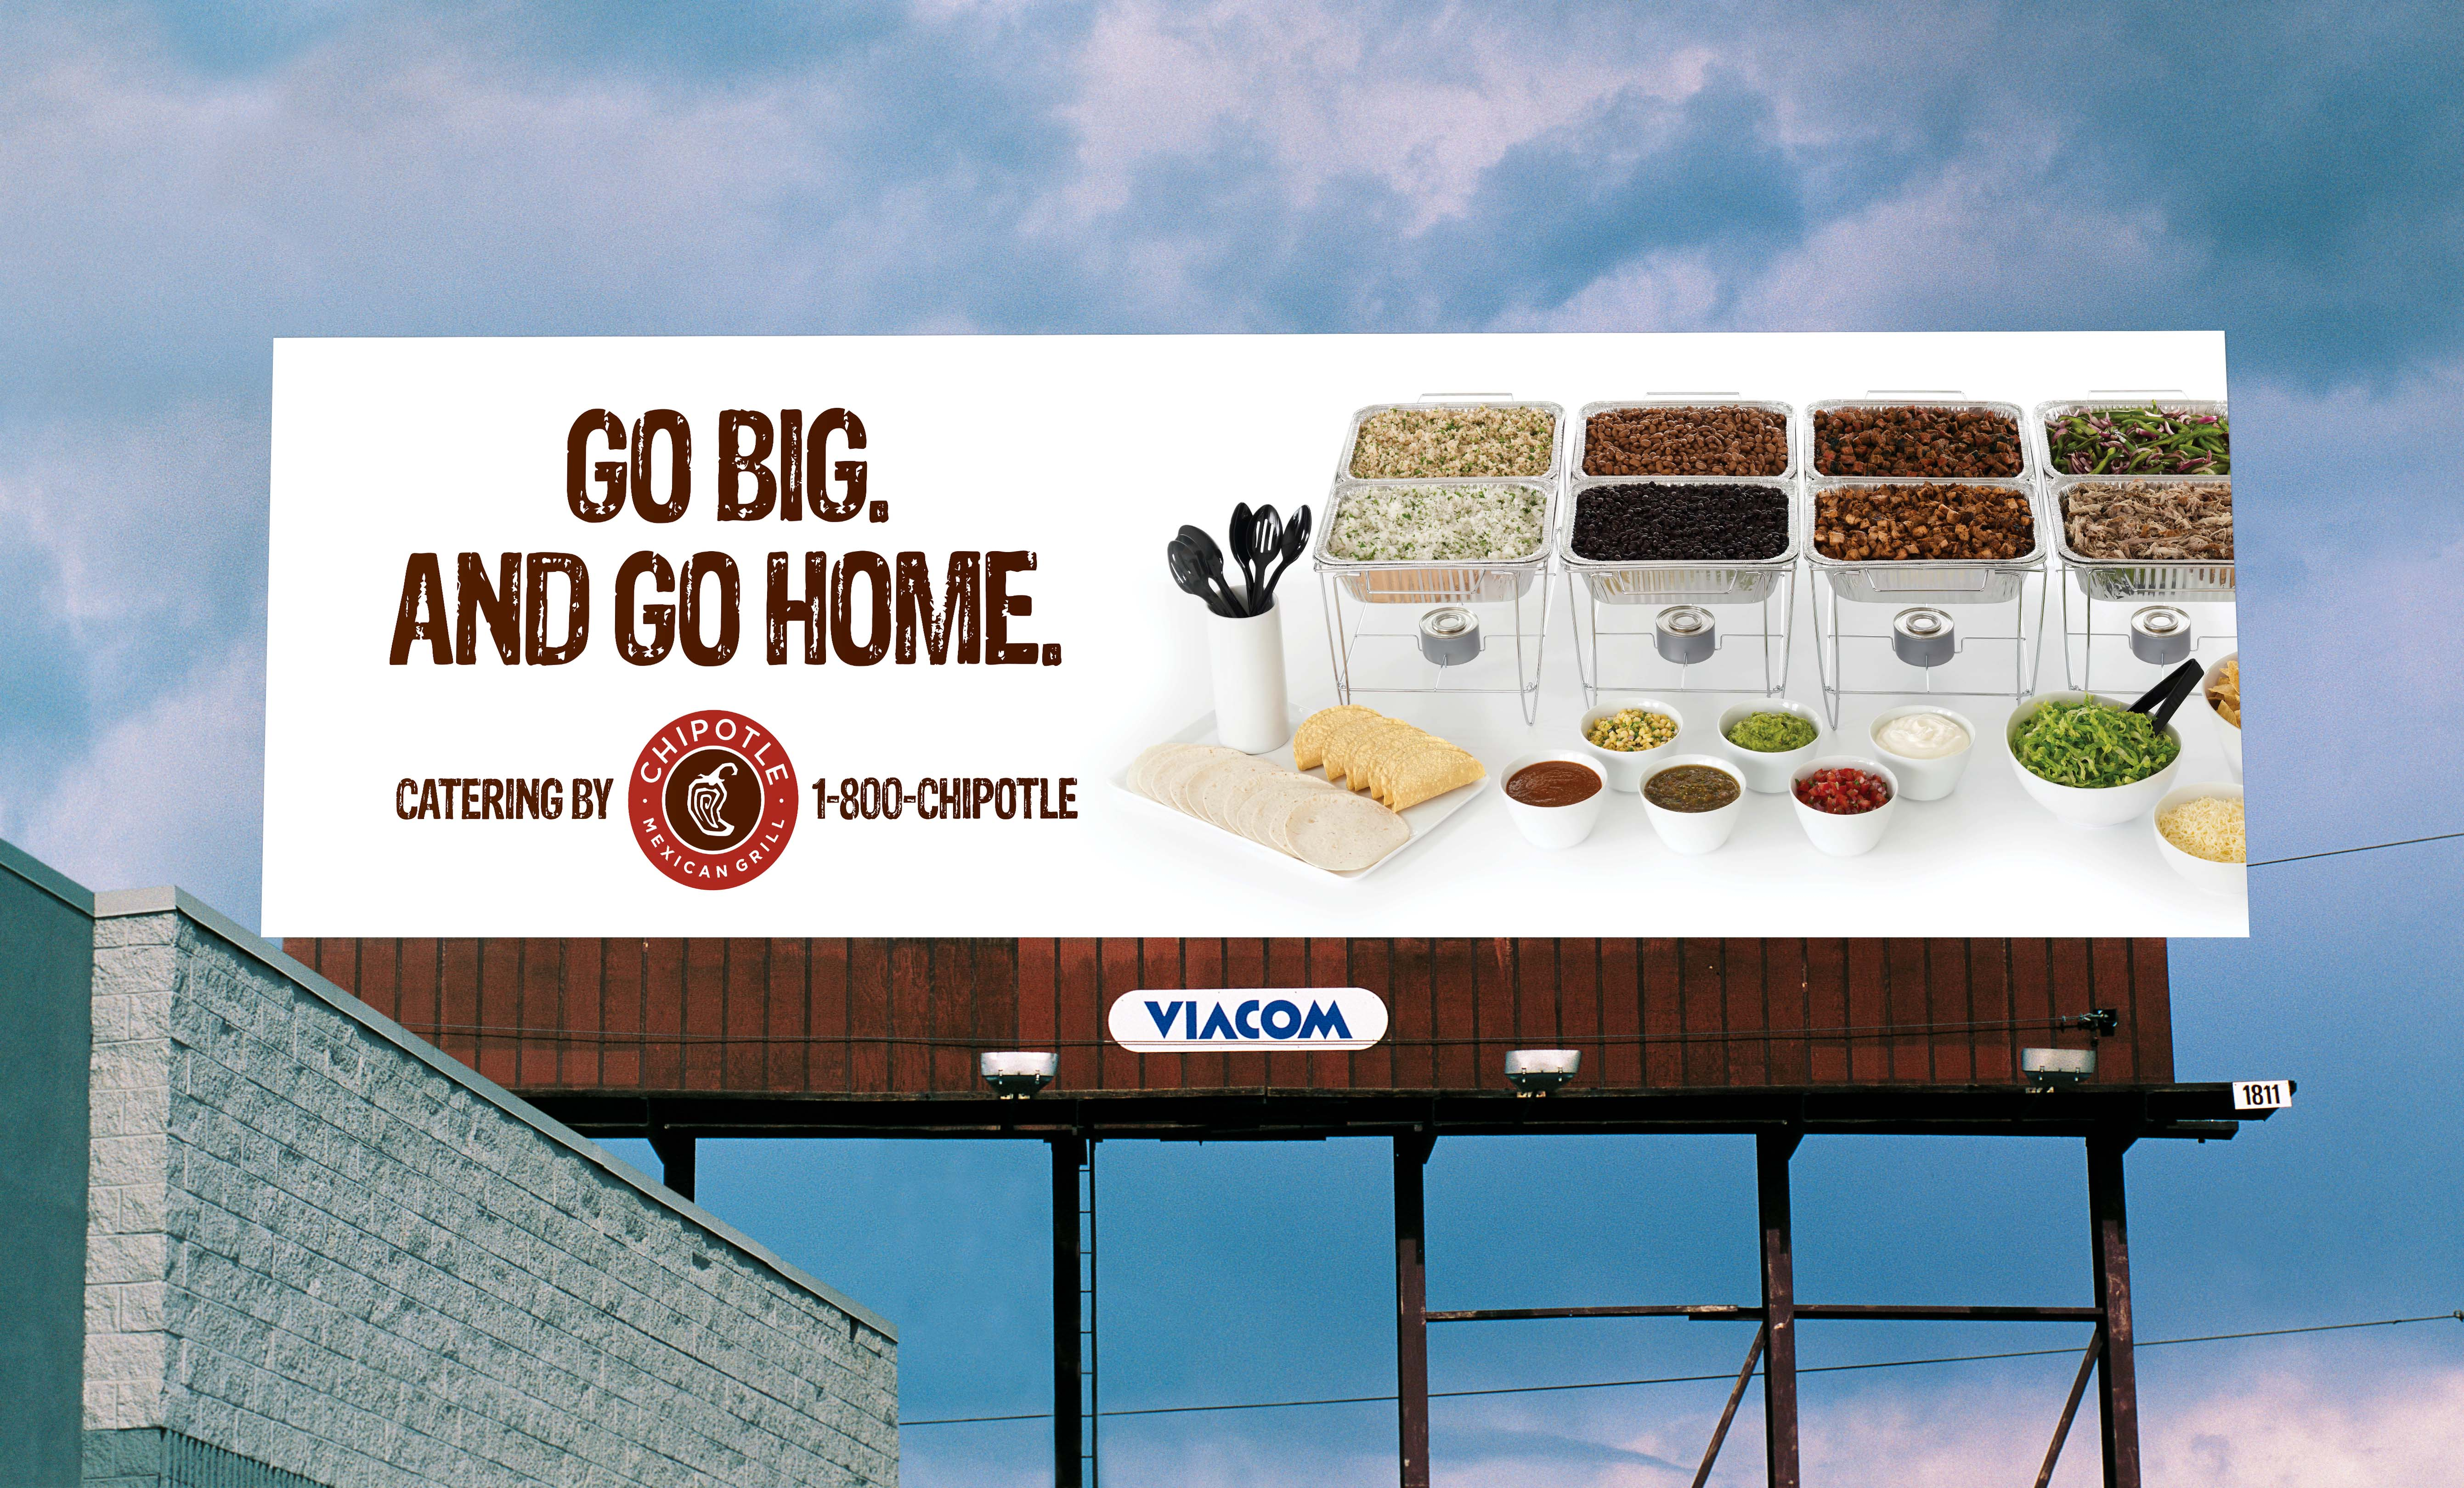 Chipotle billboard